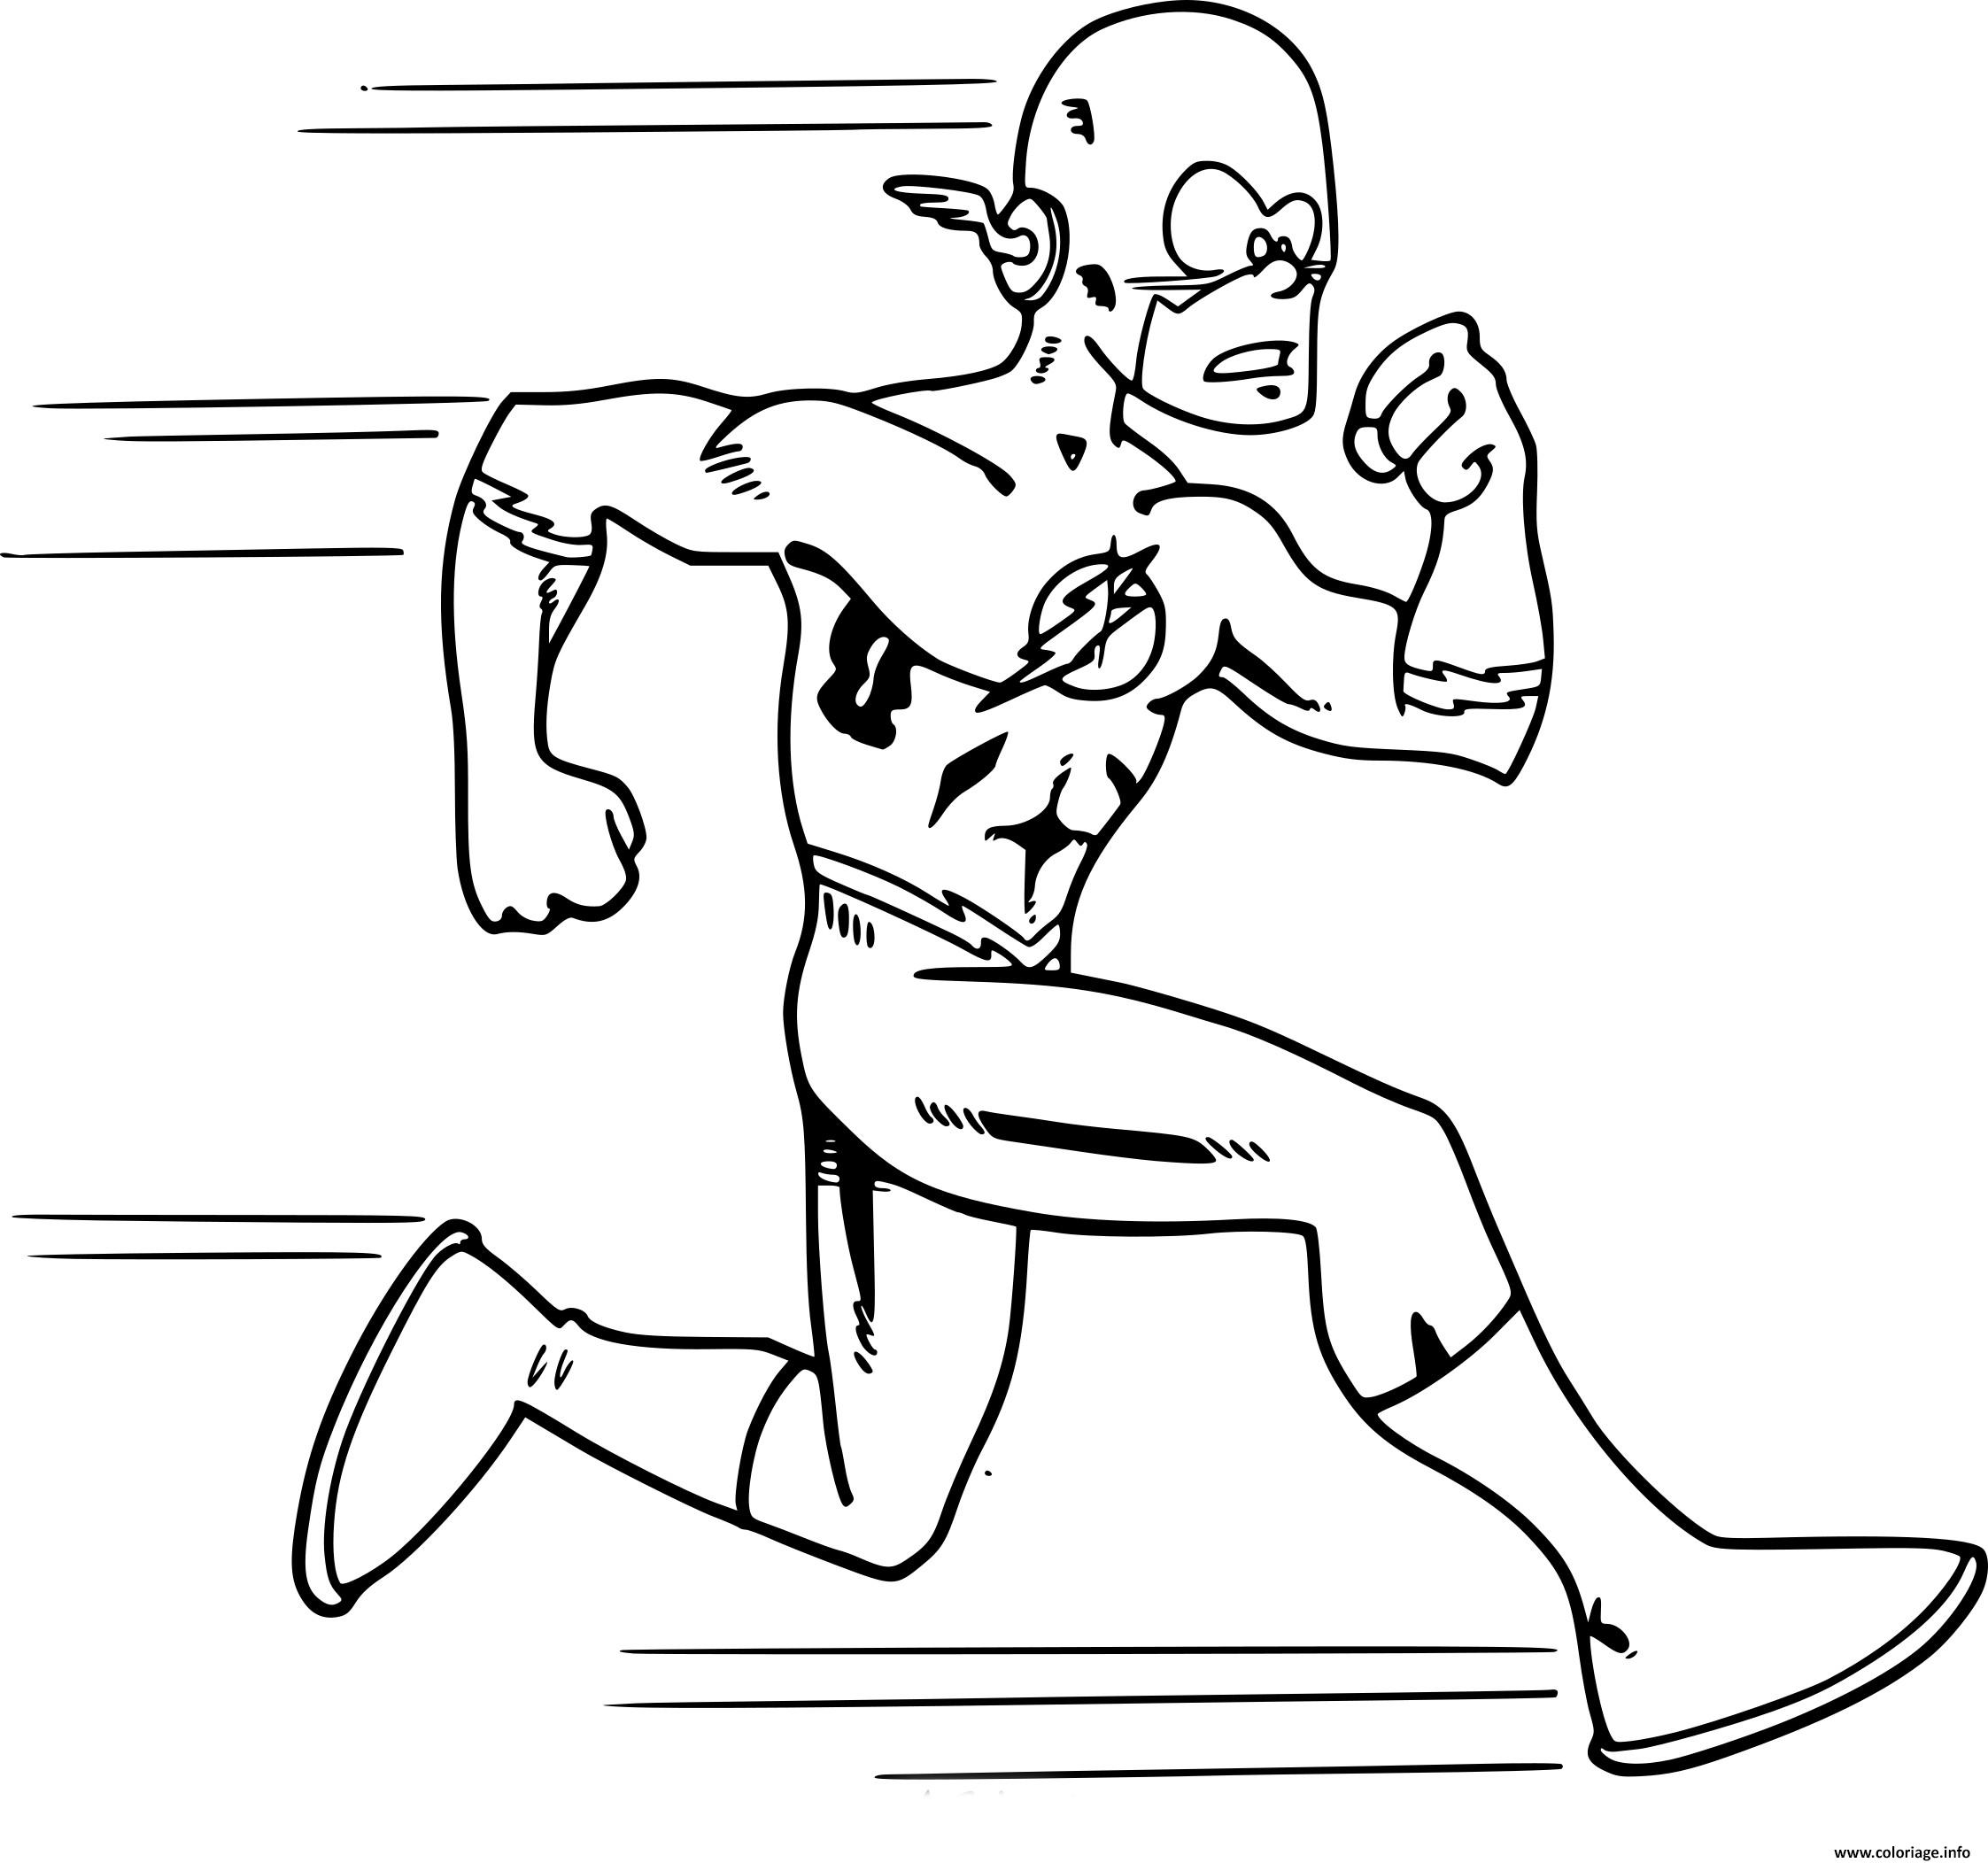 Dessin flash super heros qui court cartoon Coloriage Gratuit à Imprimer